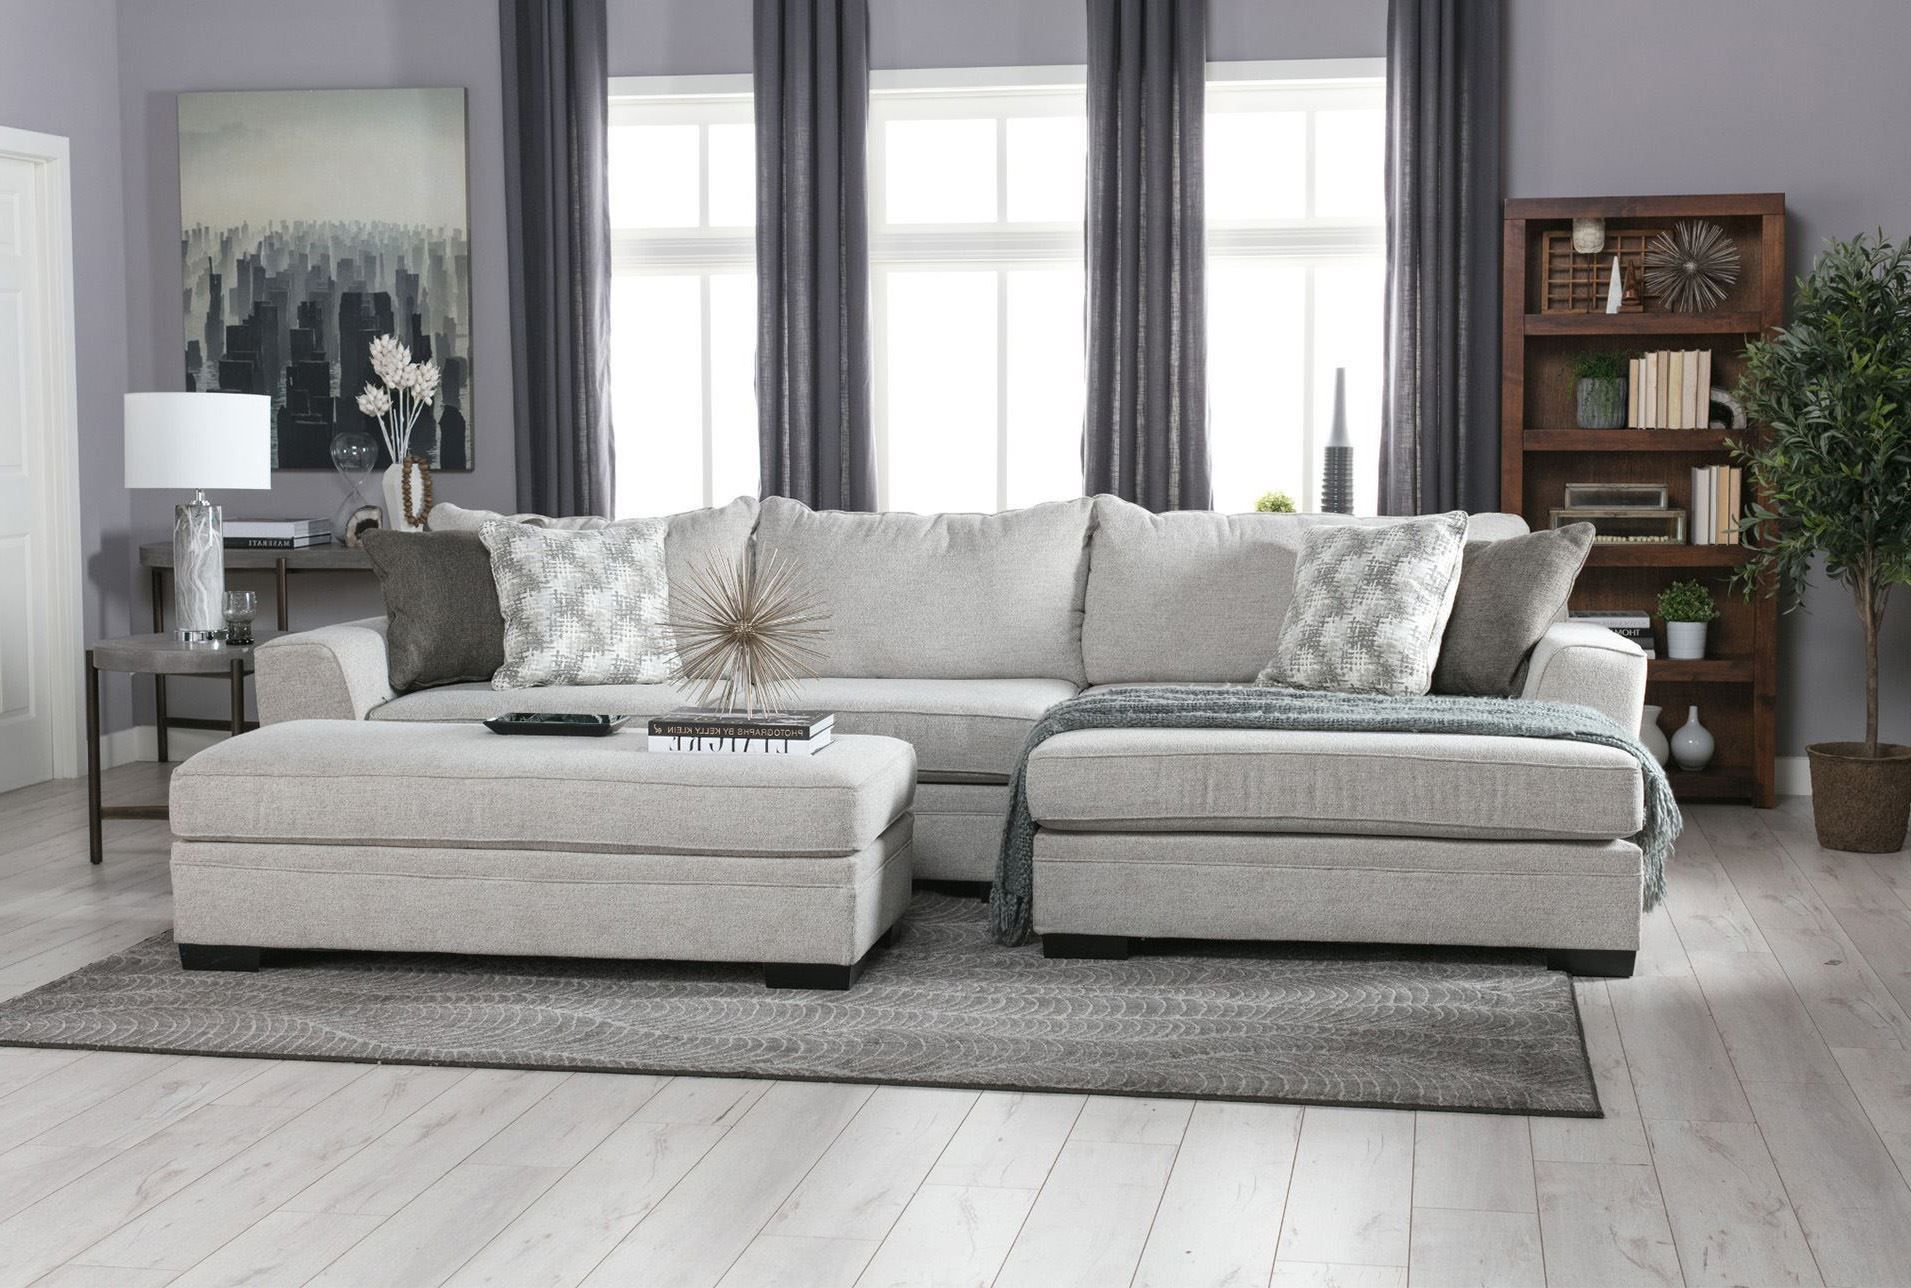 Delano 2 Piece Sectional W Raf Chaise Signature Cheap Living Room Sets Farm House Living Room Contemporary Bedroom Furniture #oversized #living #room #furniture #sets